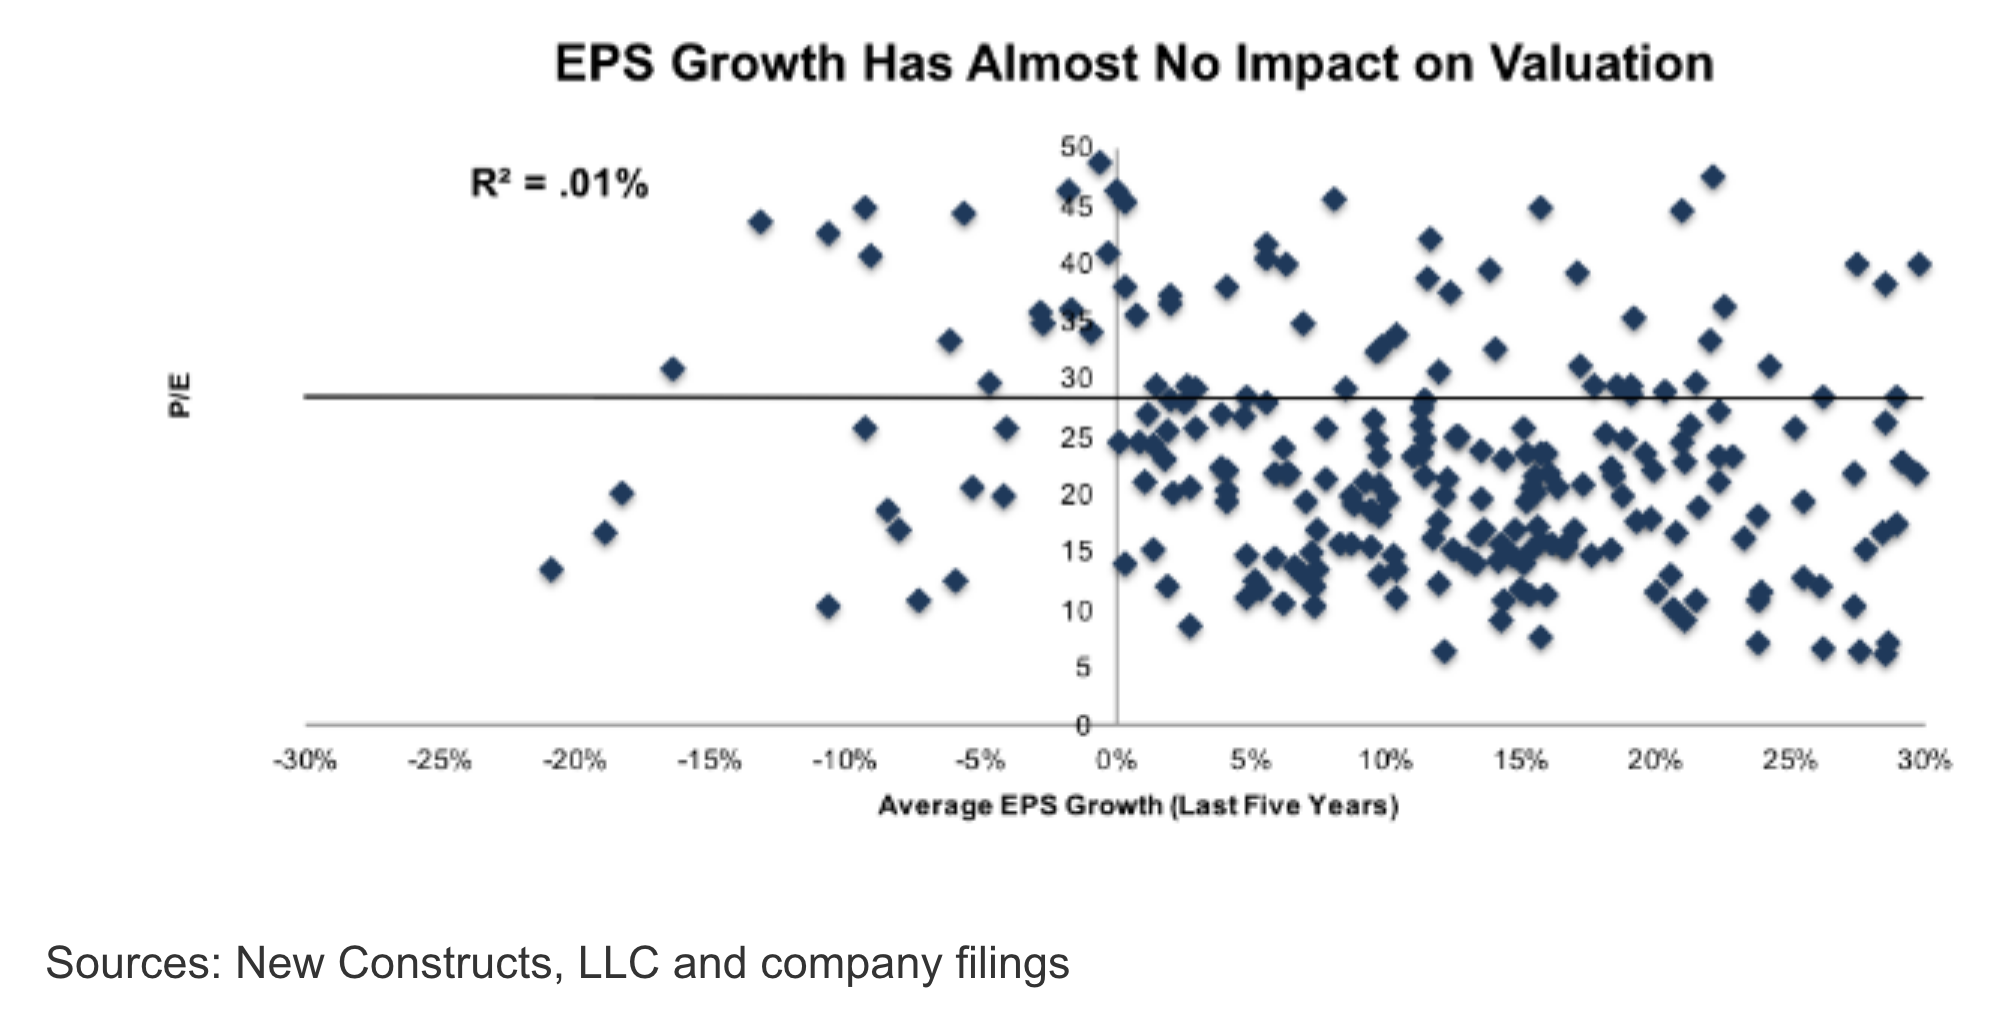 EPS Growth Has Almost No Impact on Valuation